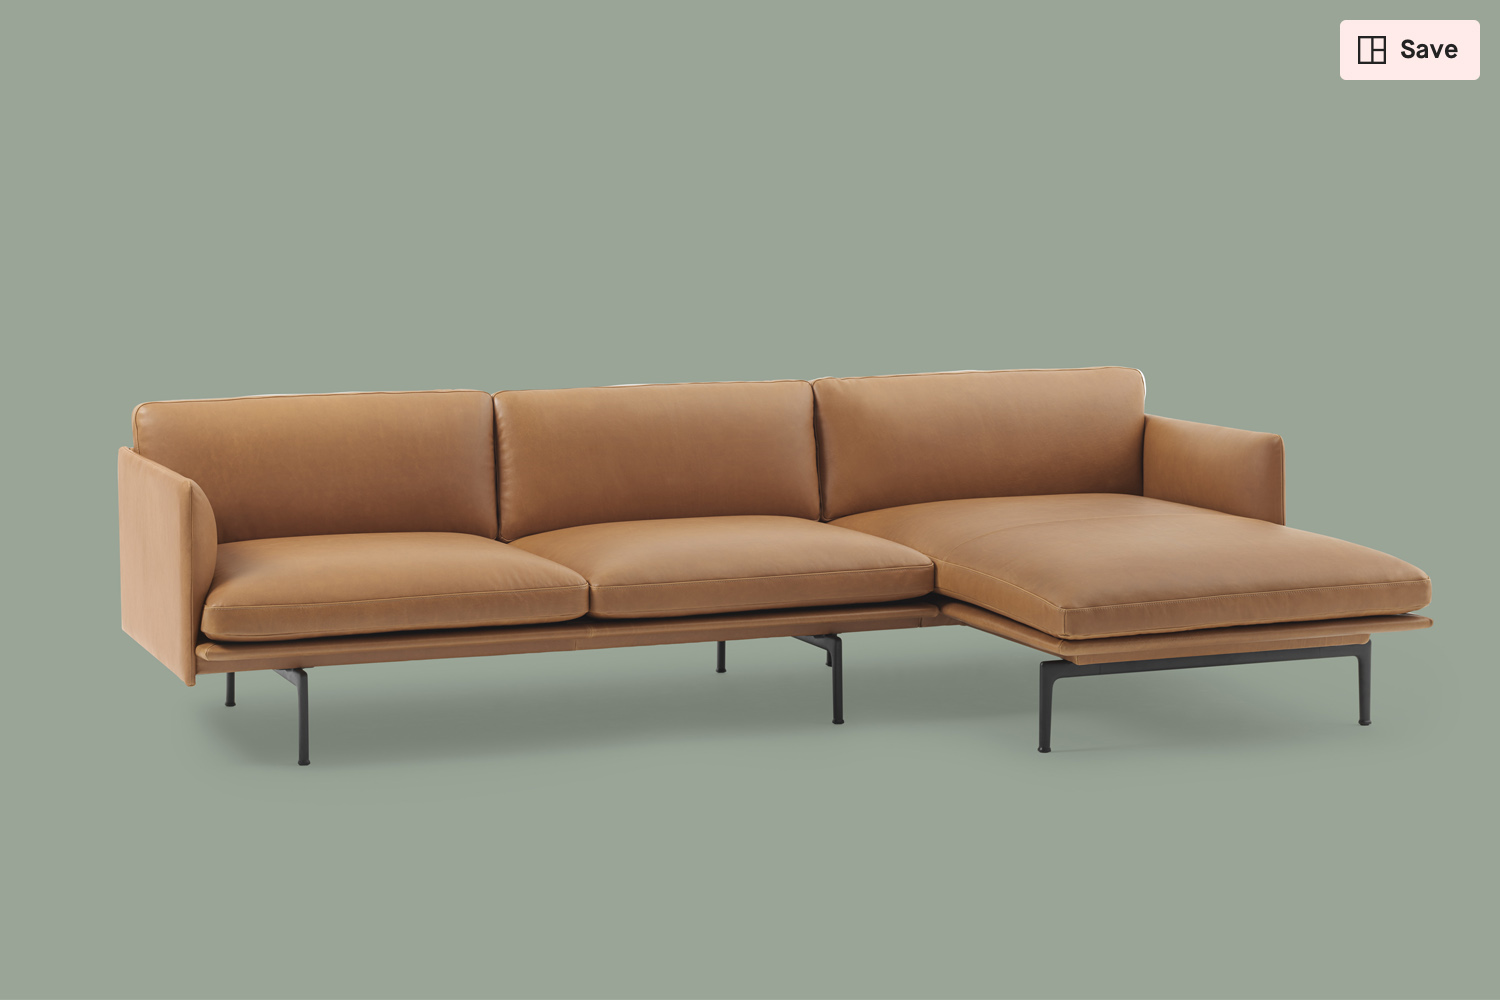 Muuto Oslo Sofa Outline Chaise Longue From Muuto Clippings